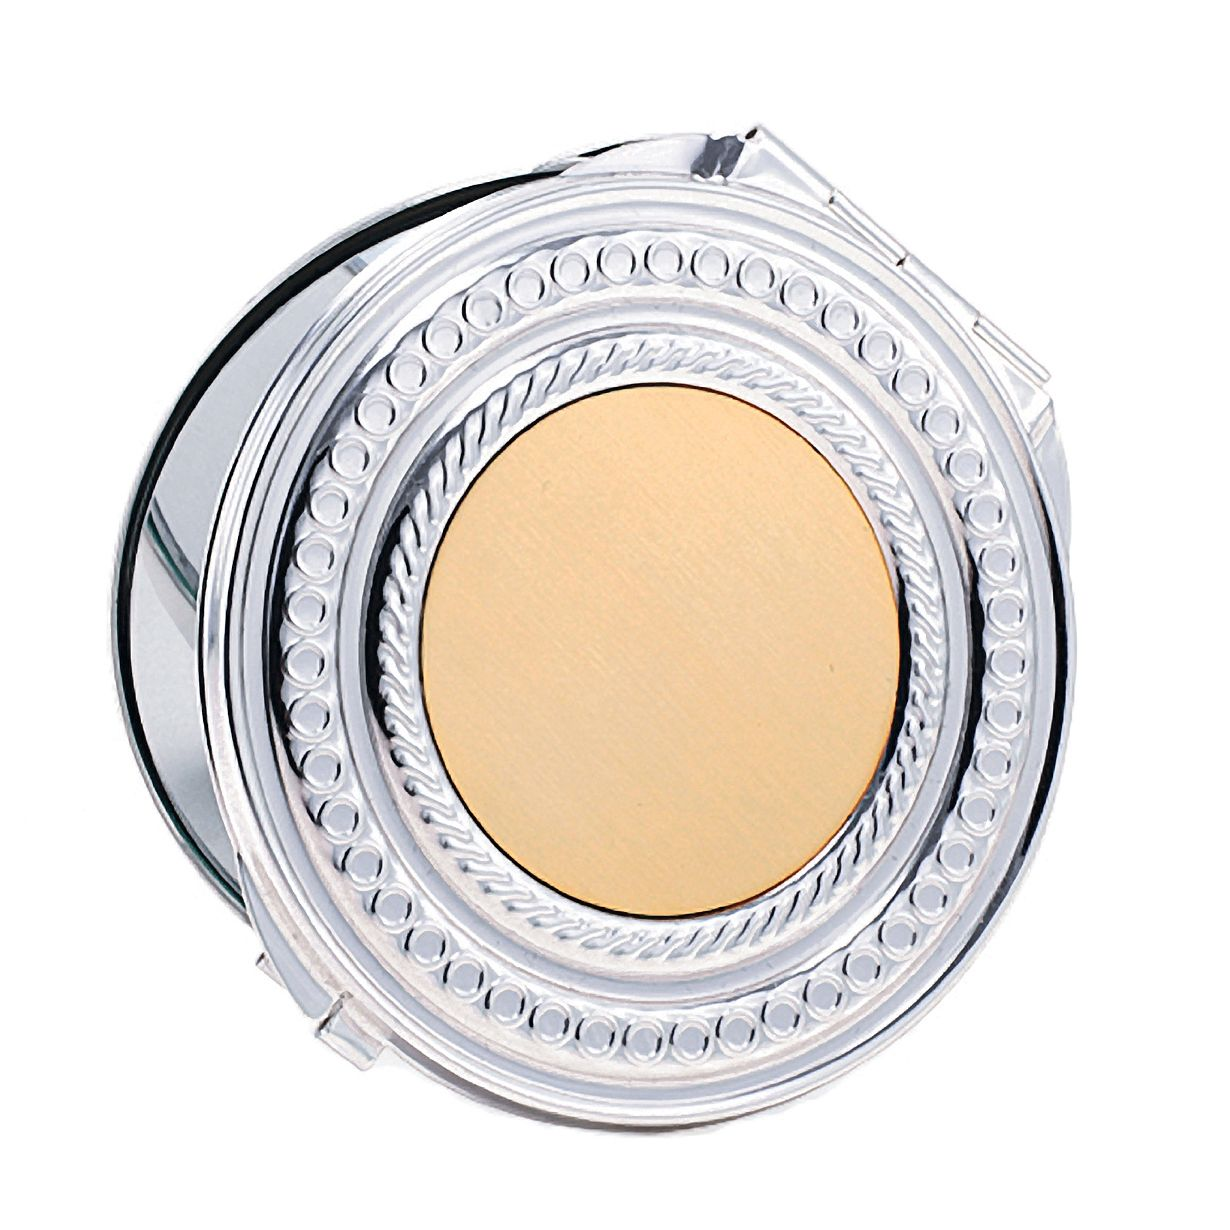 Wedgwood With Love Gold Mirror Compact - Product number 2622548